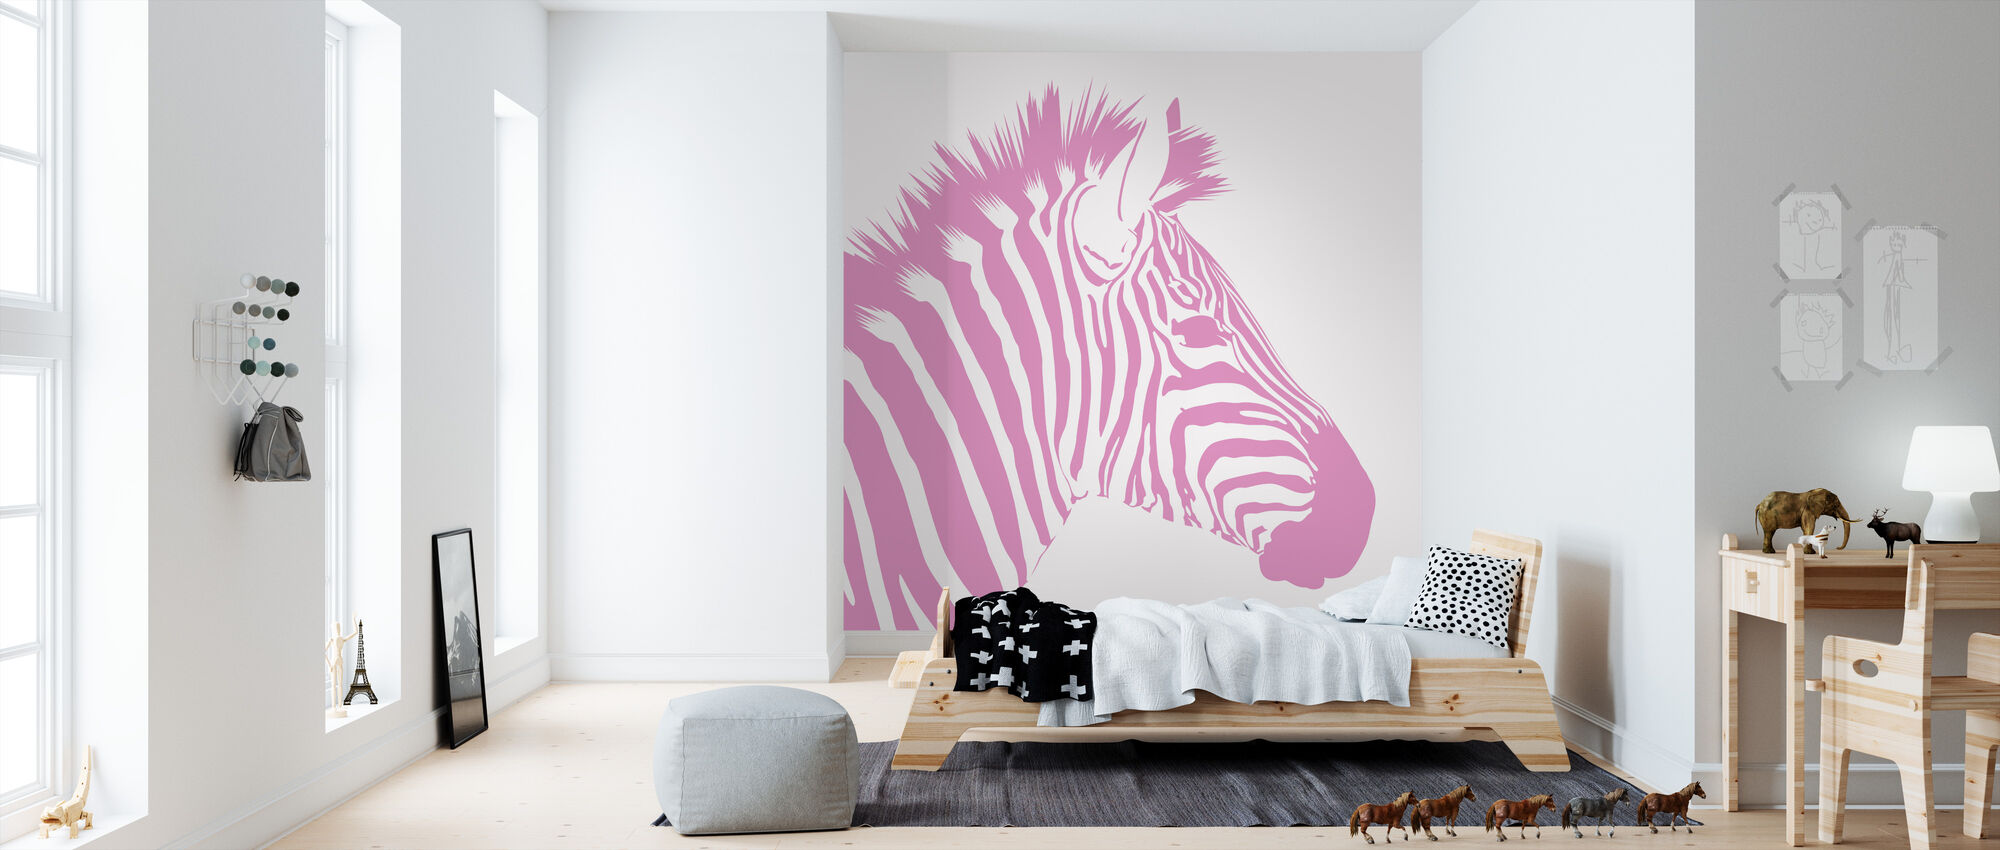 Good Looker - Wallpaper - Kids Room